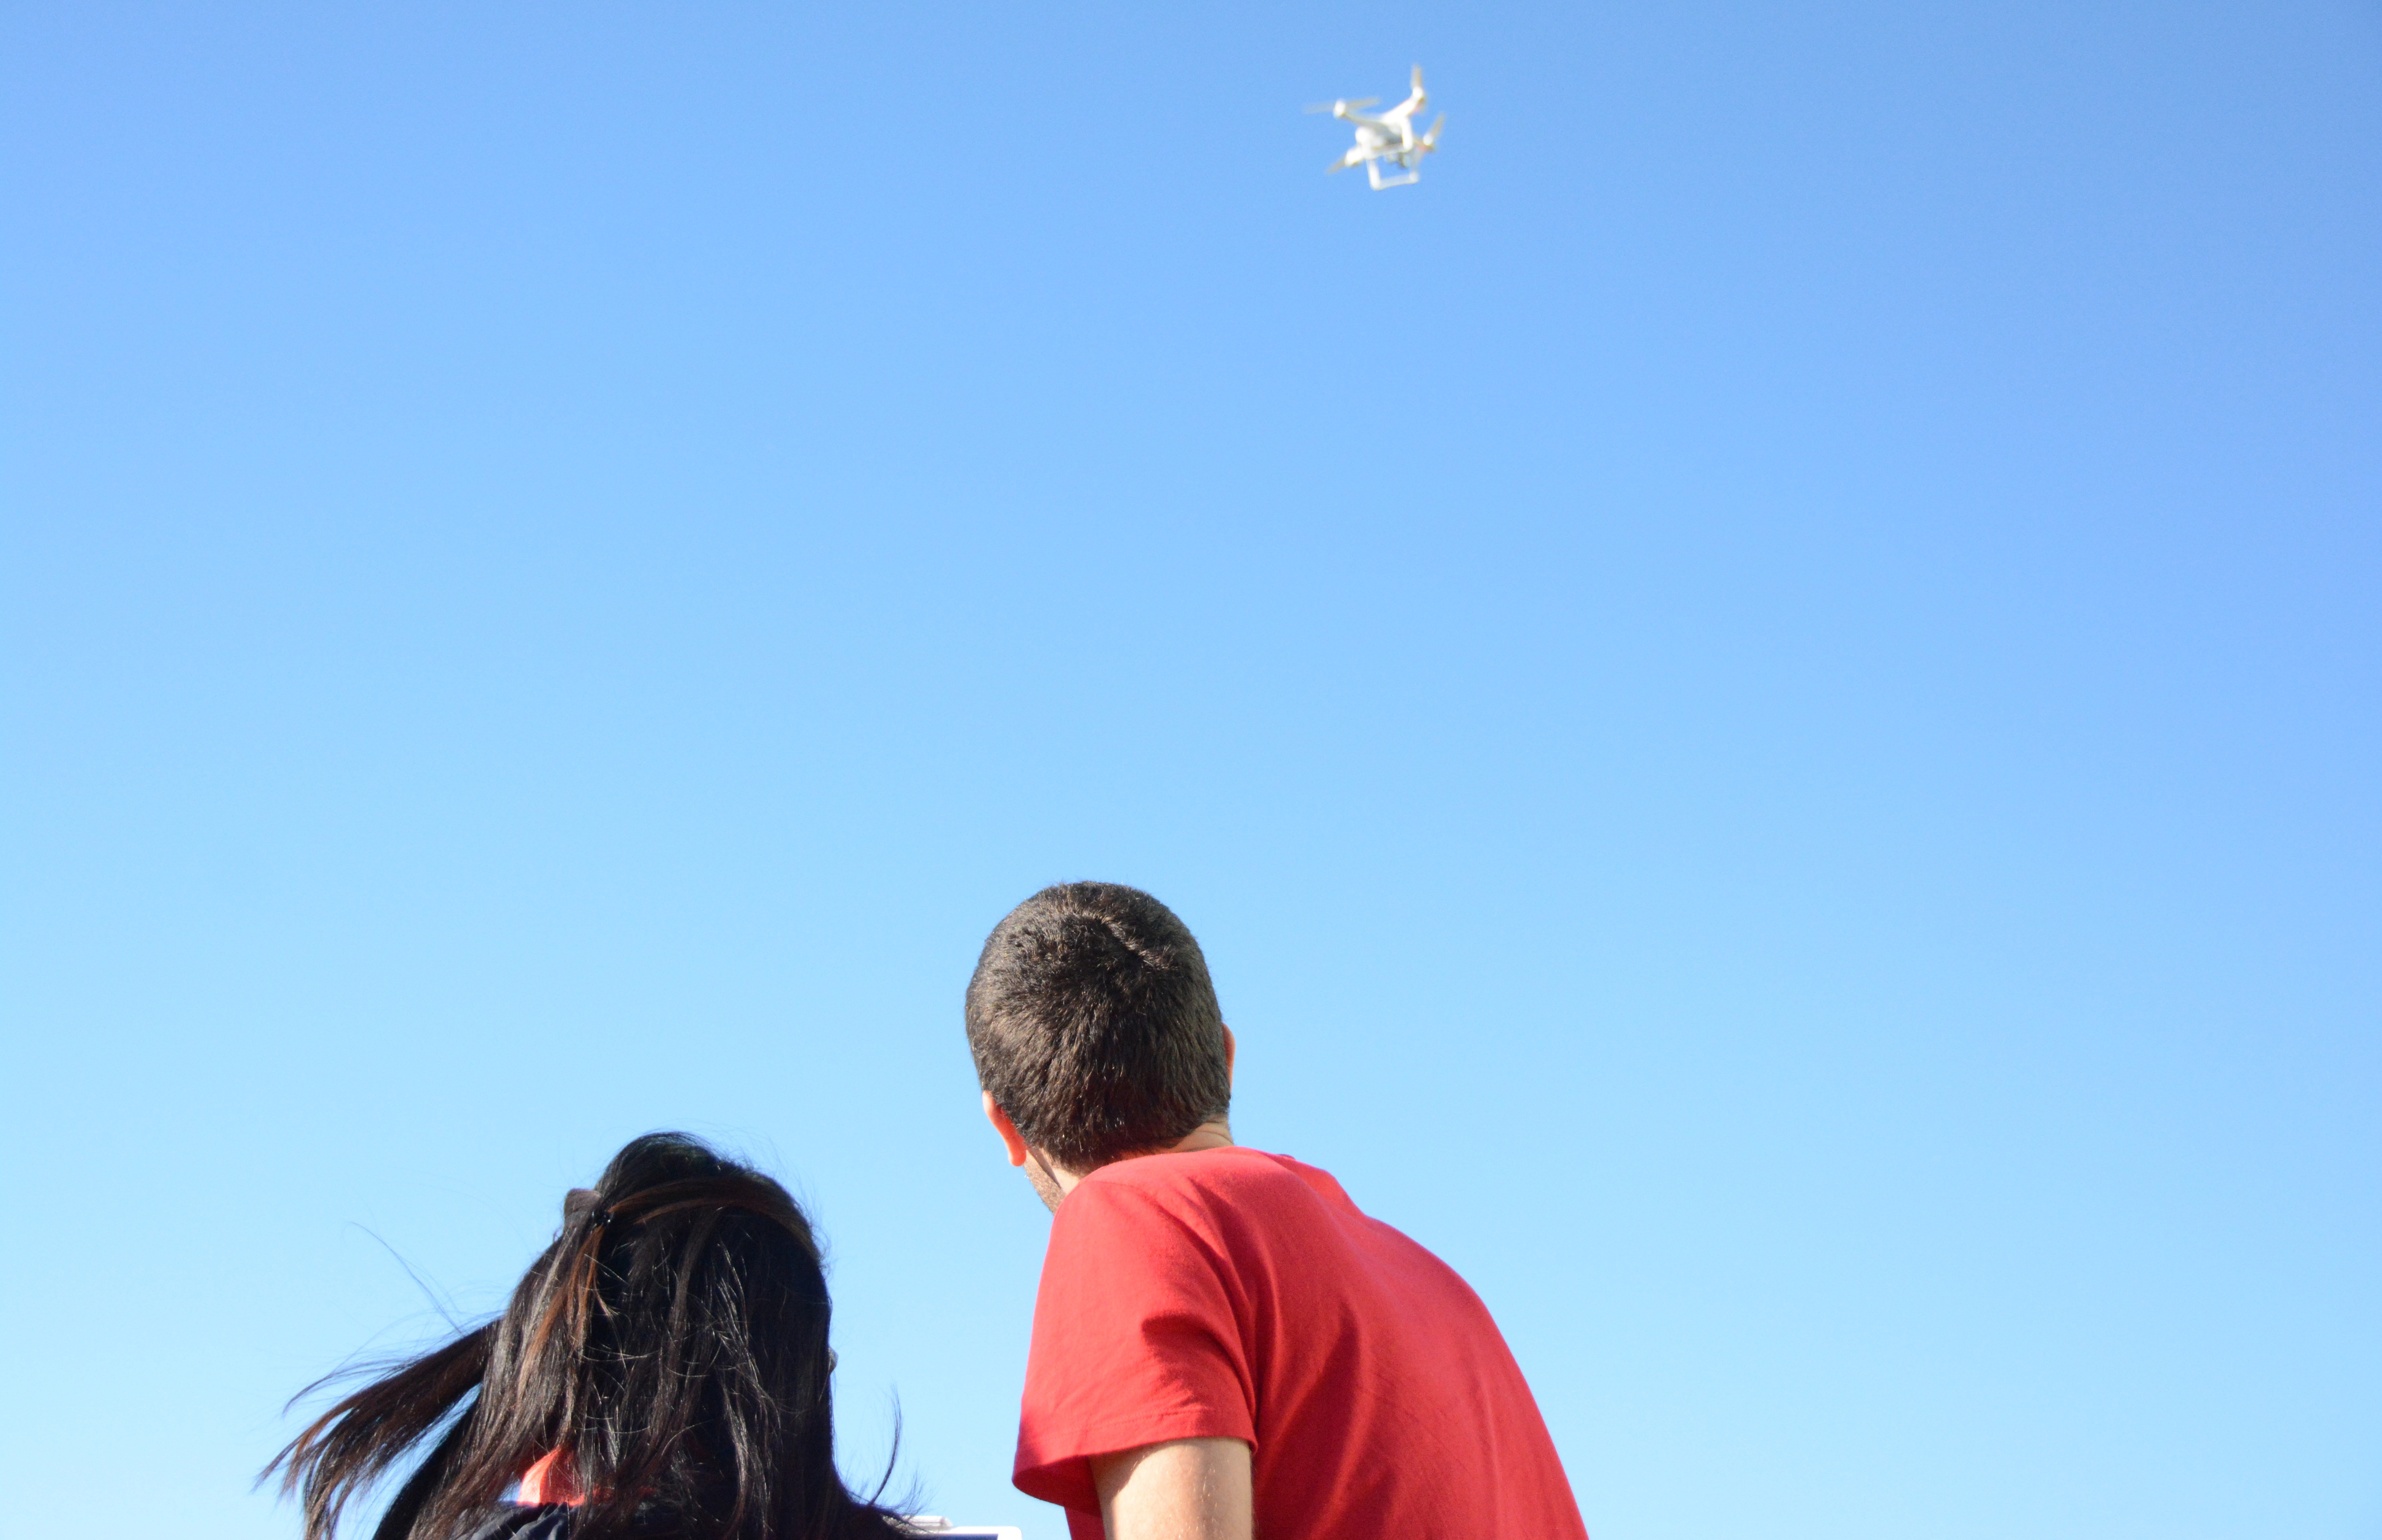 An undergraduate student and a PhD student fly a drone against a clear blue sky.